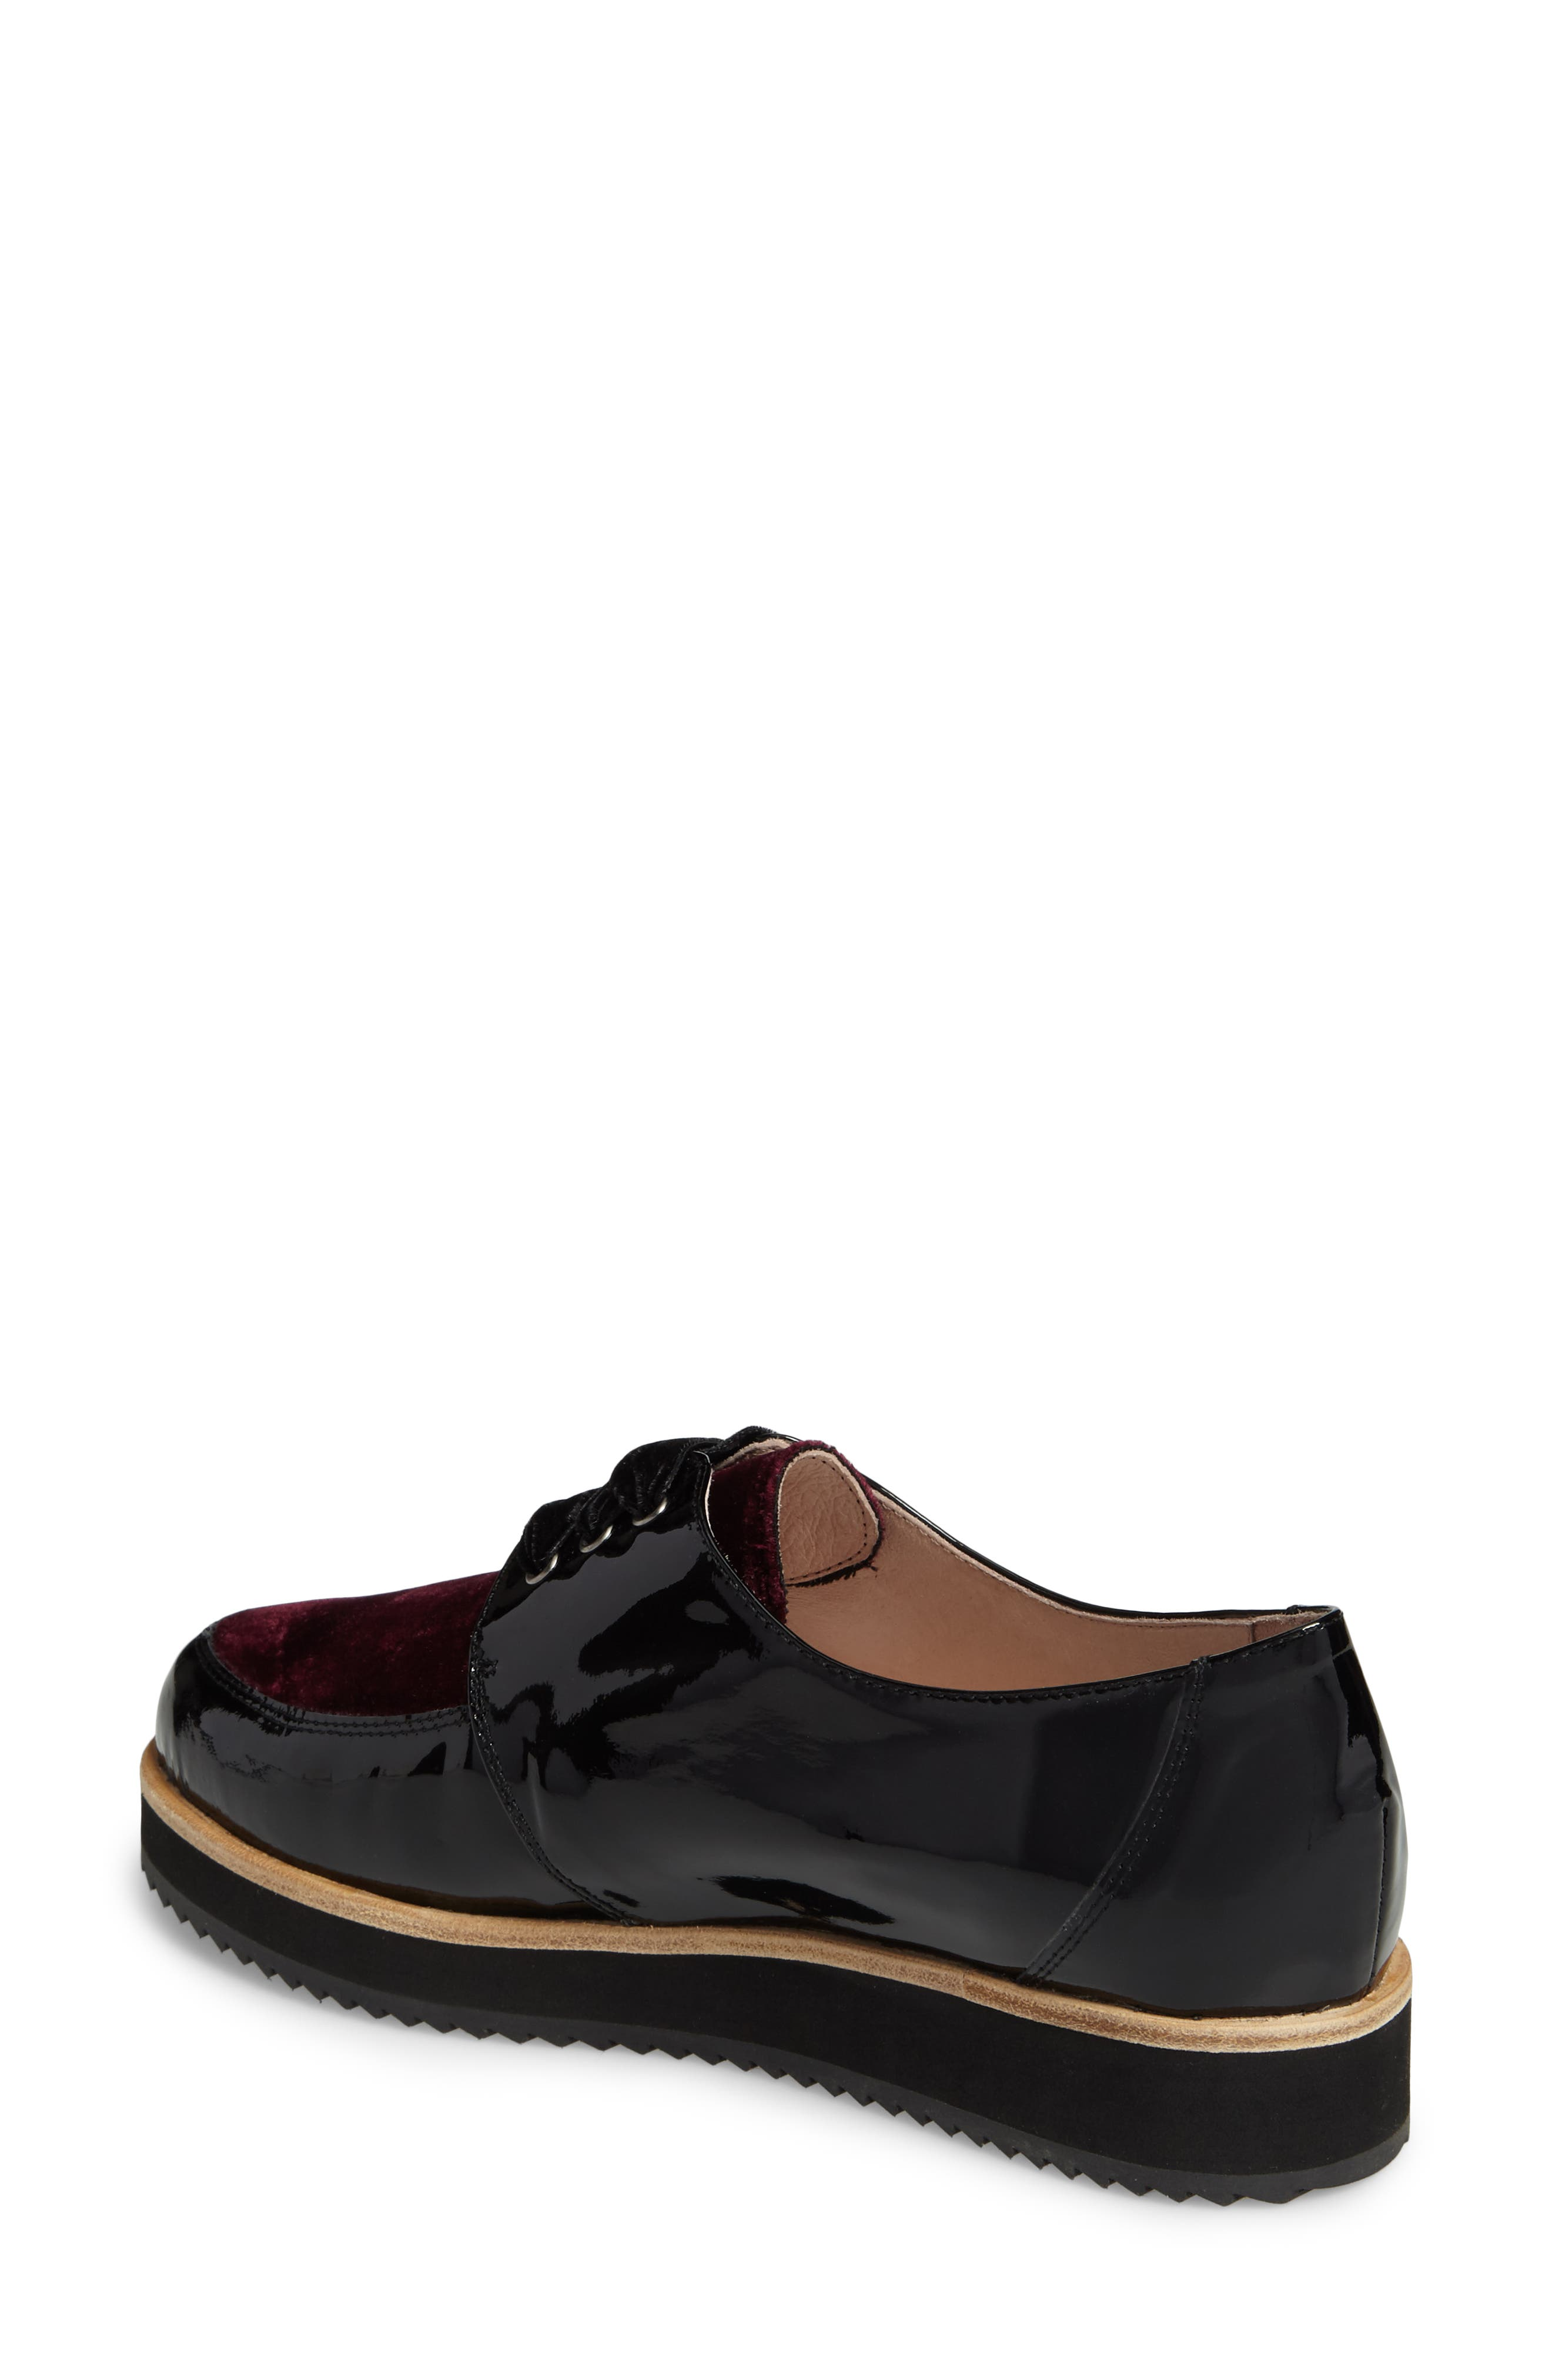 Reese Platform Oxford,                             Alternate thumbnail 2, color,                             Burgundy Patent